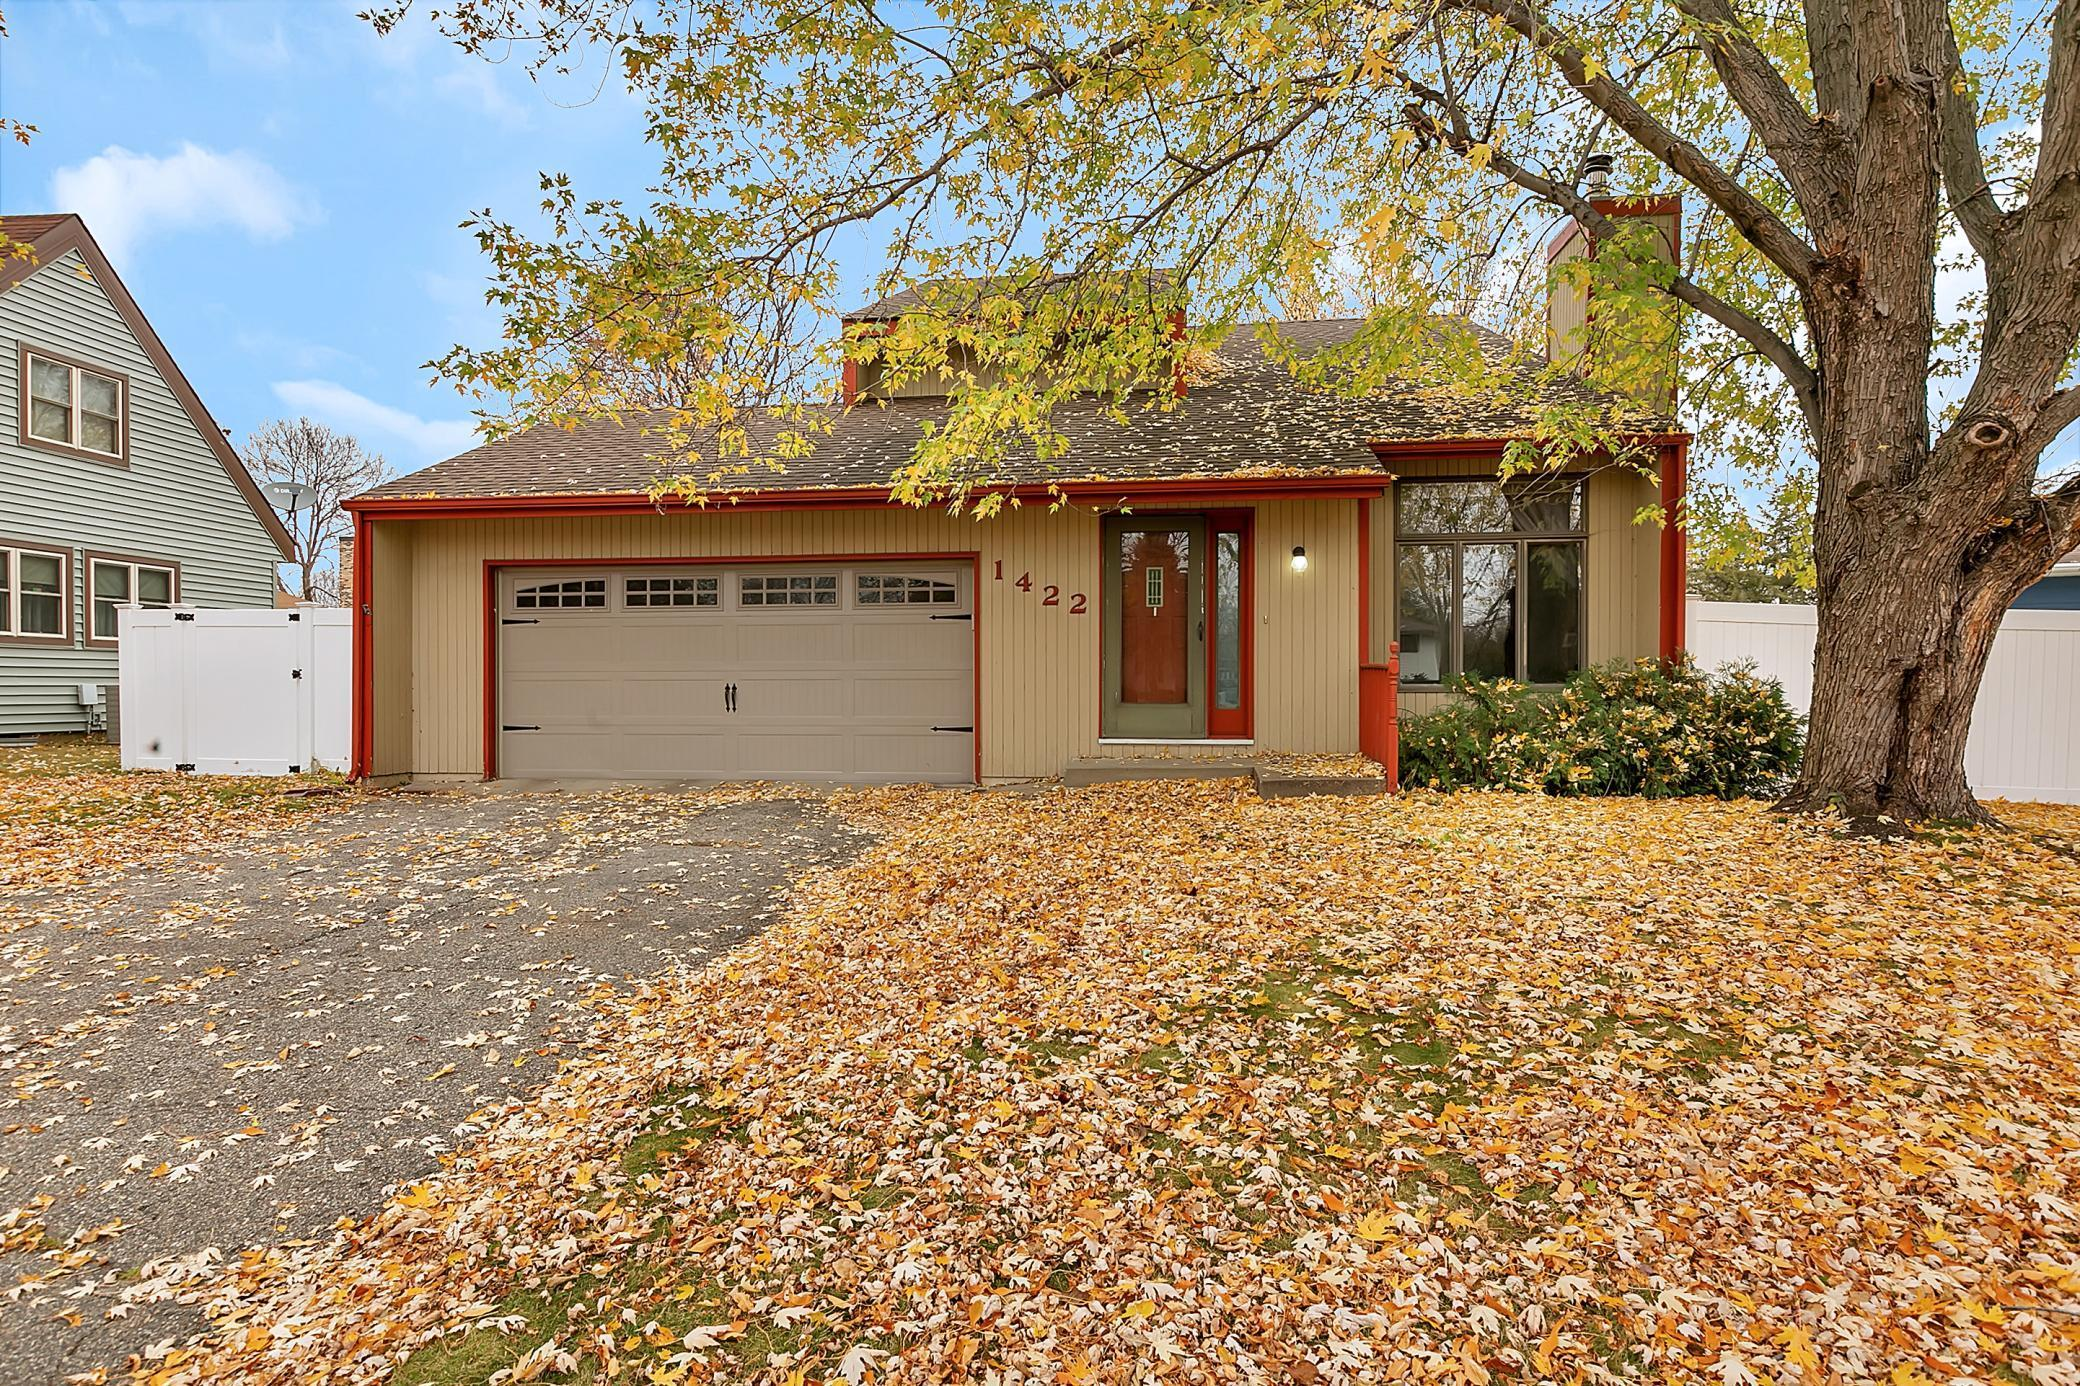 Unique custom built two story home located in a cul-de-sac. Main level features remodeled kitchen, spacious living room with wood fireplace and vaulted ceilings, laundry and a 1/2 bathroom. The upper-Level offers 3 Bedrooms on the same level and a full bathroom with master walkthrough. Lower level consists of a family room, a bathroom and more space to finish or for storage. Backyard has a 6 foot maintenance free privacy fence, concrete patio and storage shed.